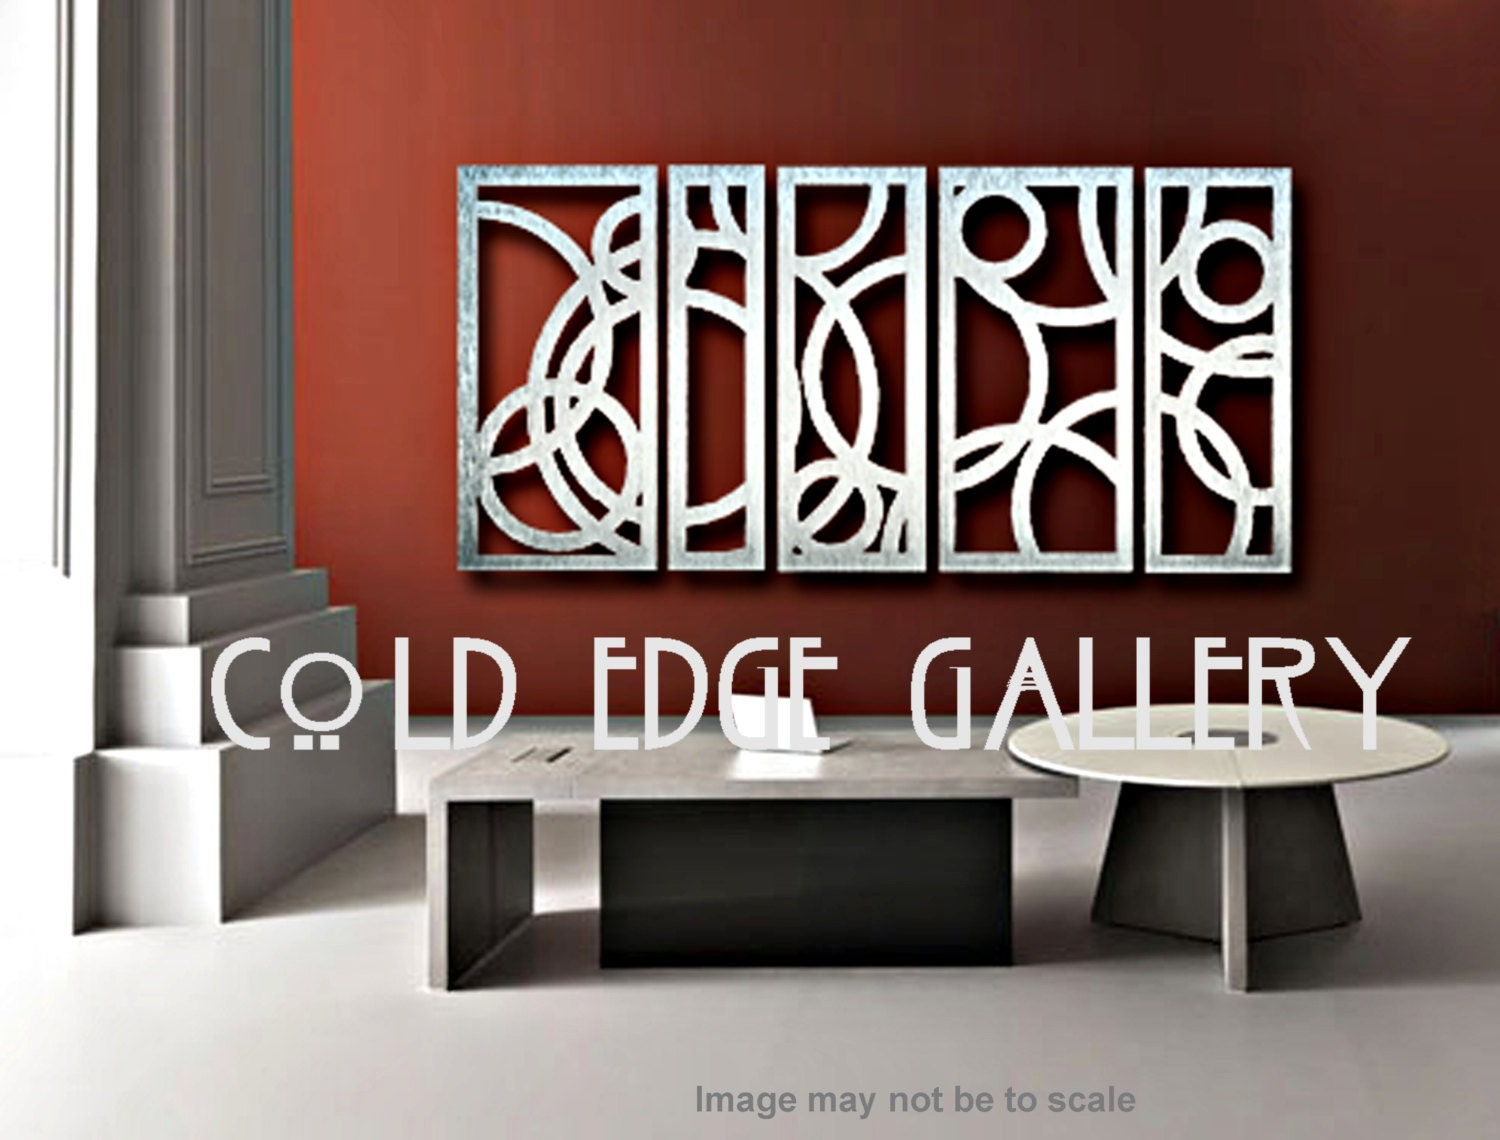 Extra large art metal wall art art decor by coldedgegallery Large wall art